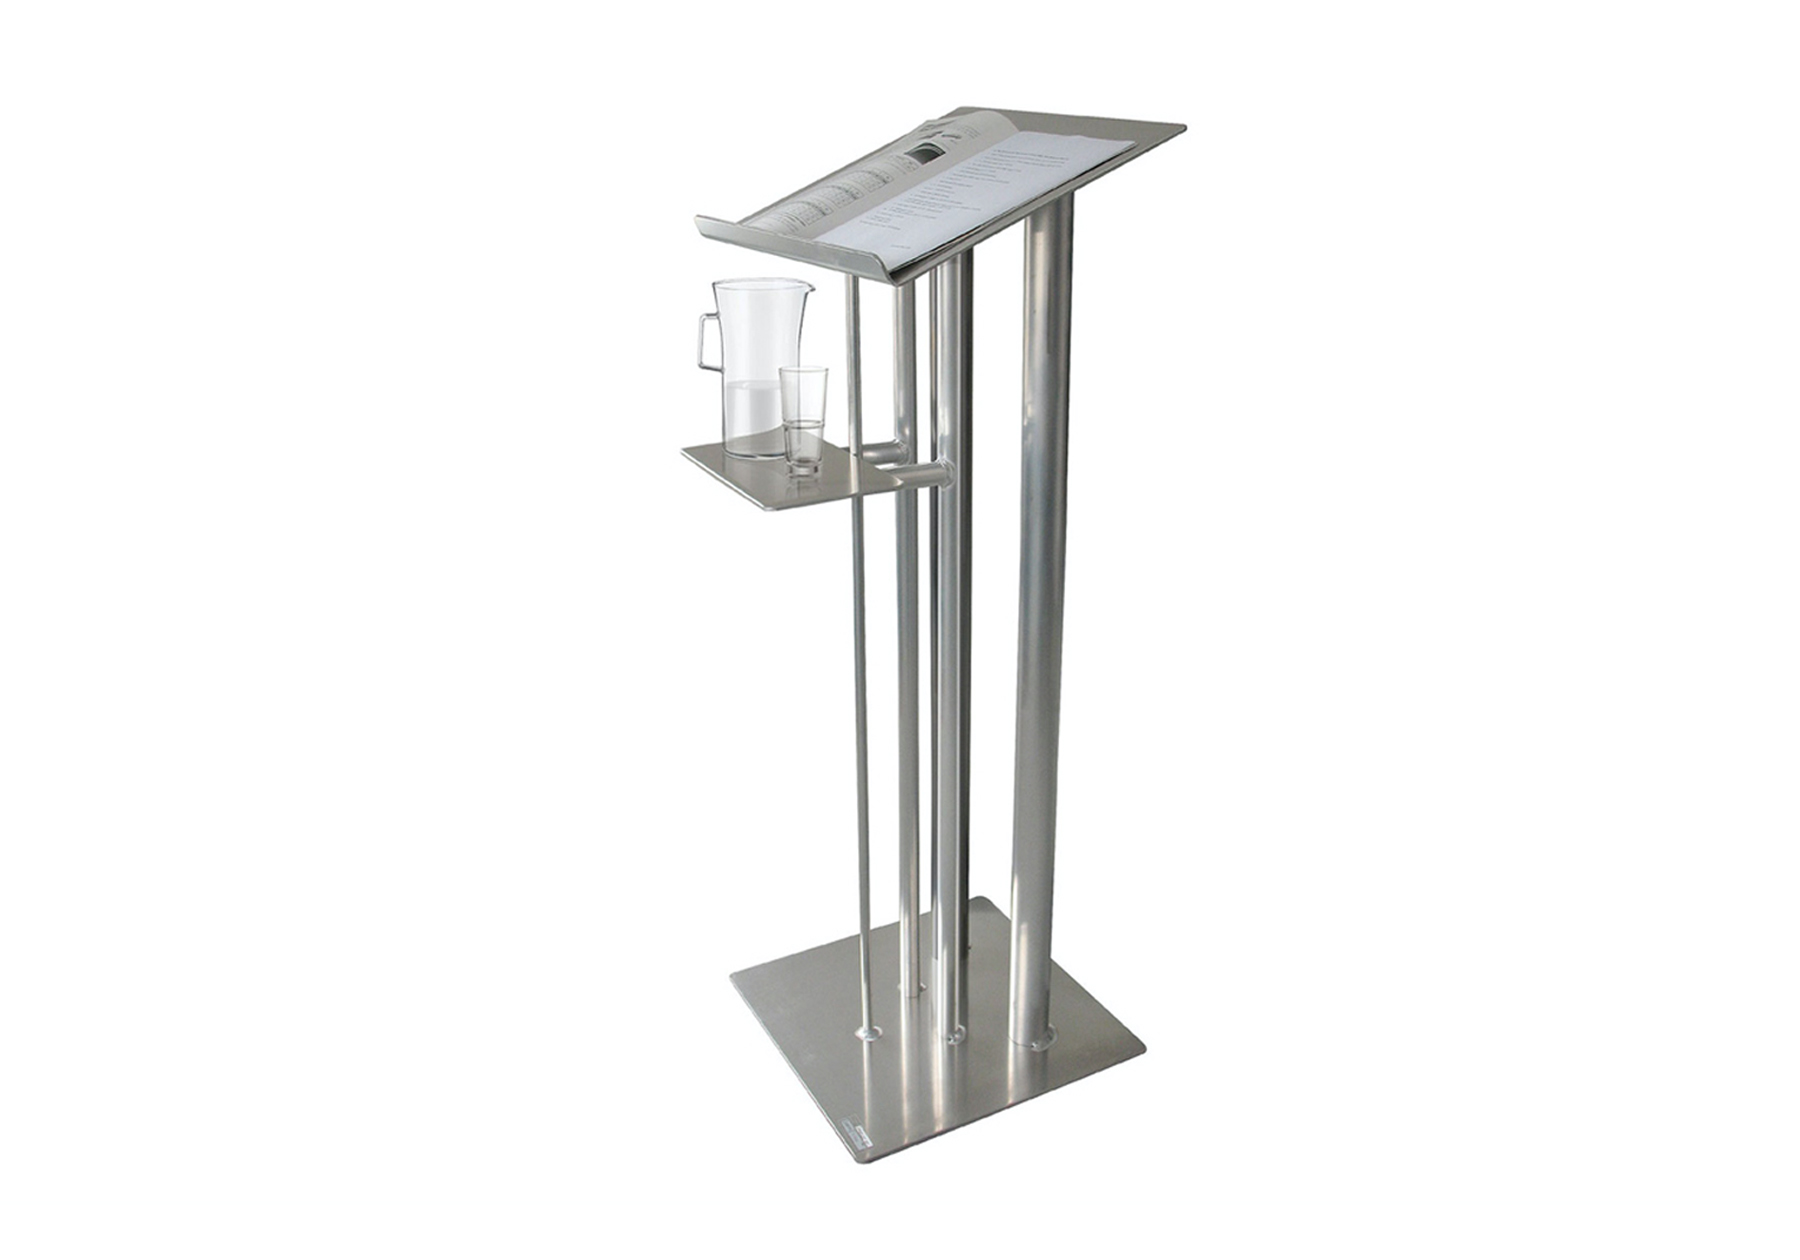 Hire aluminium lecterns, flipcharts & conference equipment in Cardiff, Swansea, Newport, Carmarthenshire, Pembrokeshire, South & West Wales